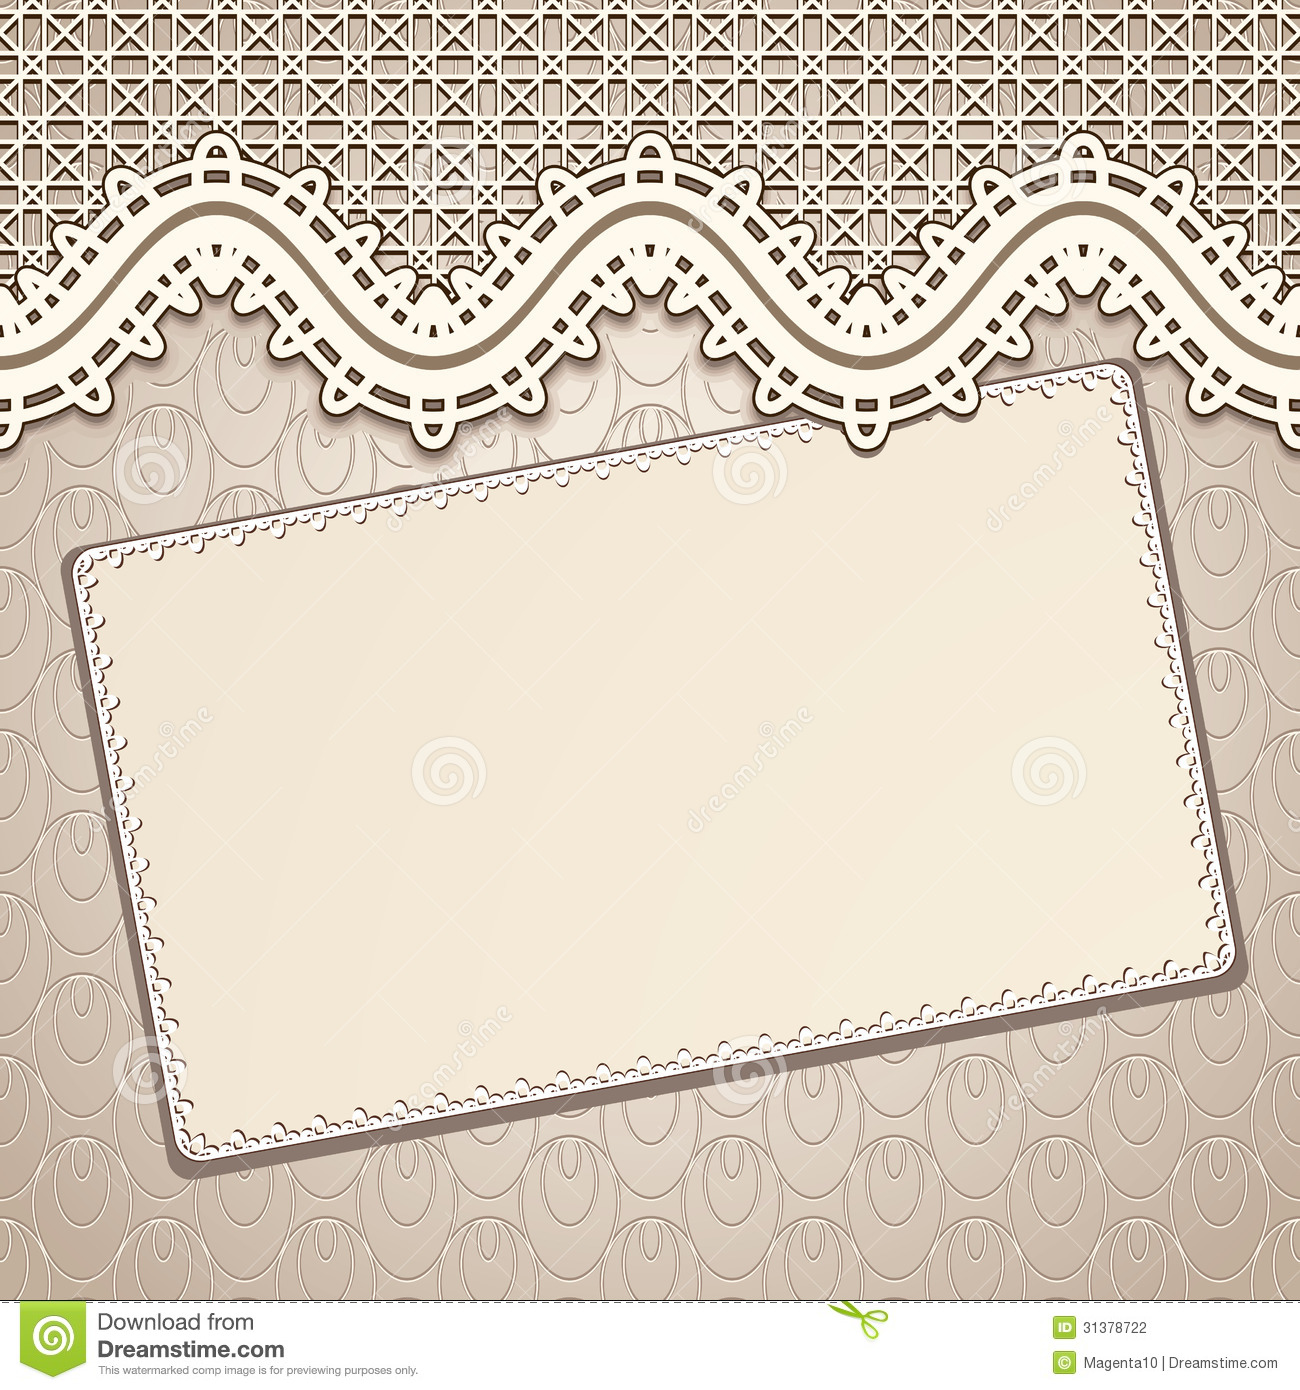 Vintage lace background stock vector. Illustration of cards.